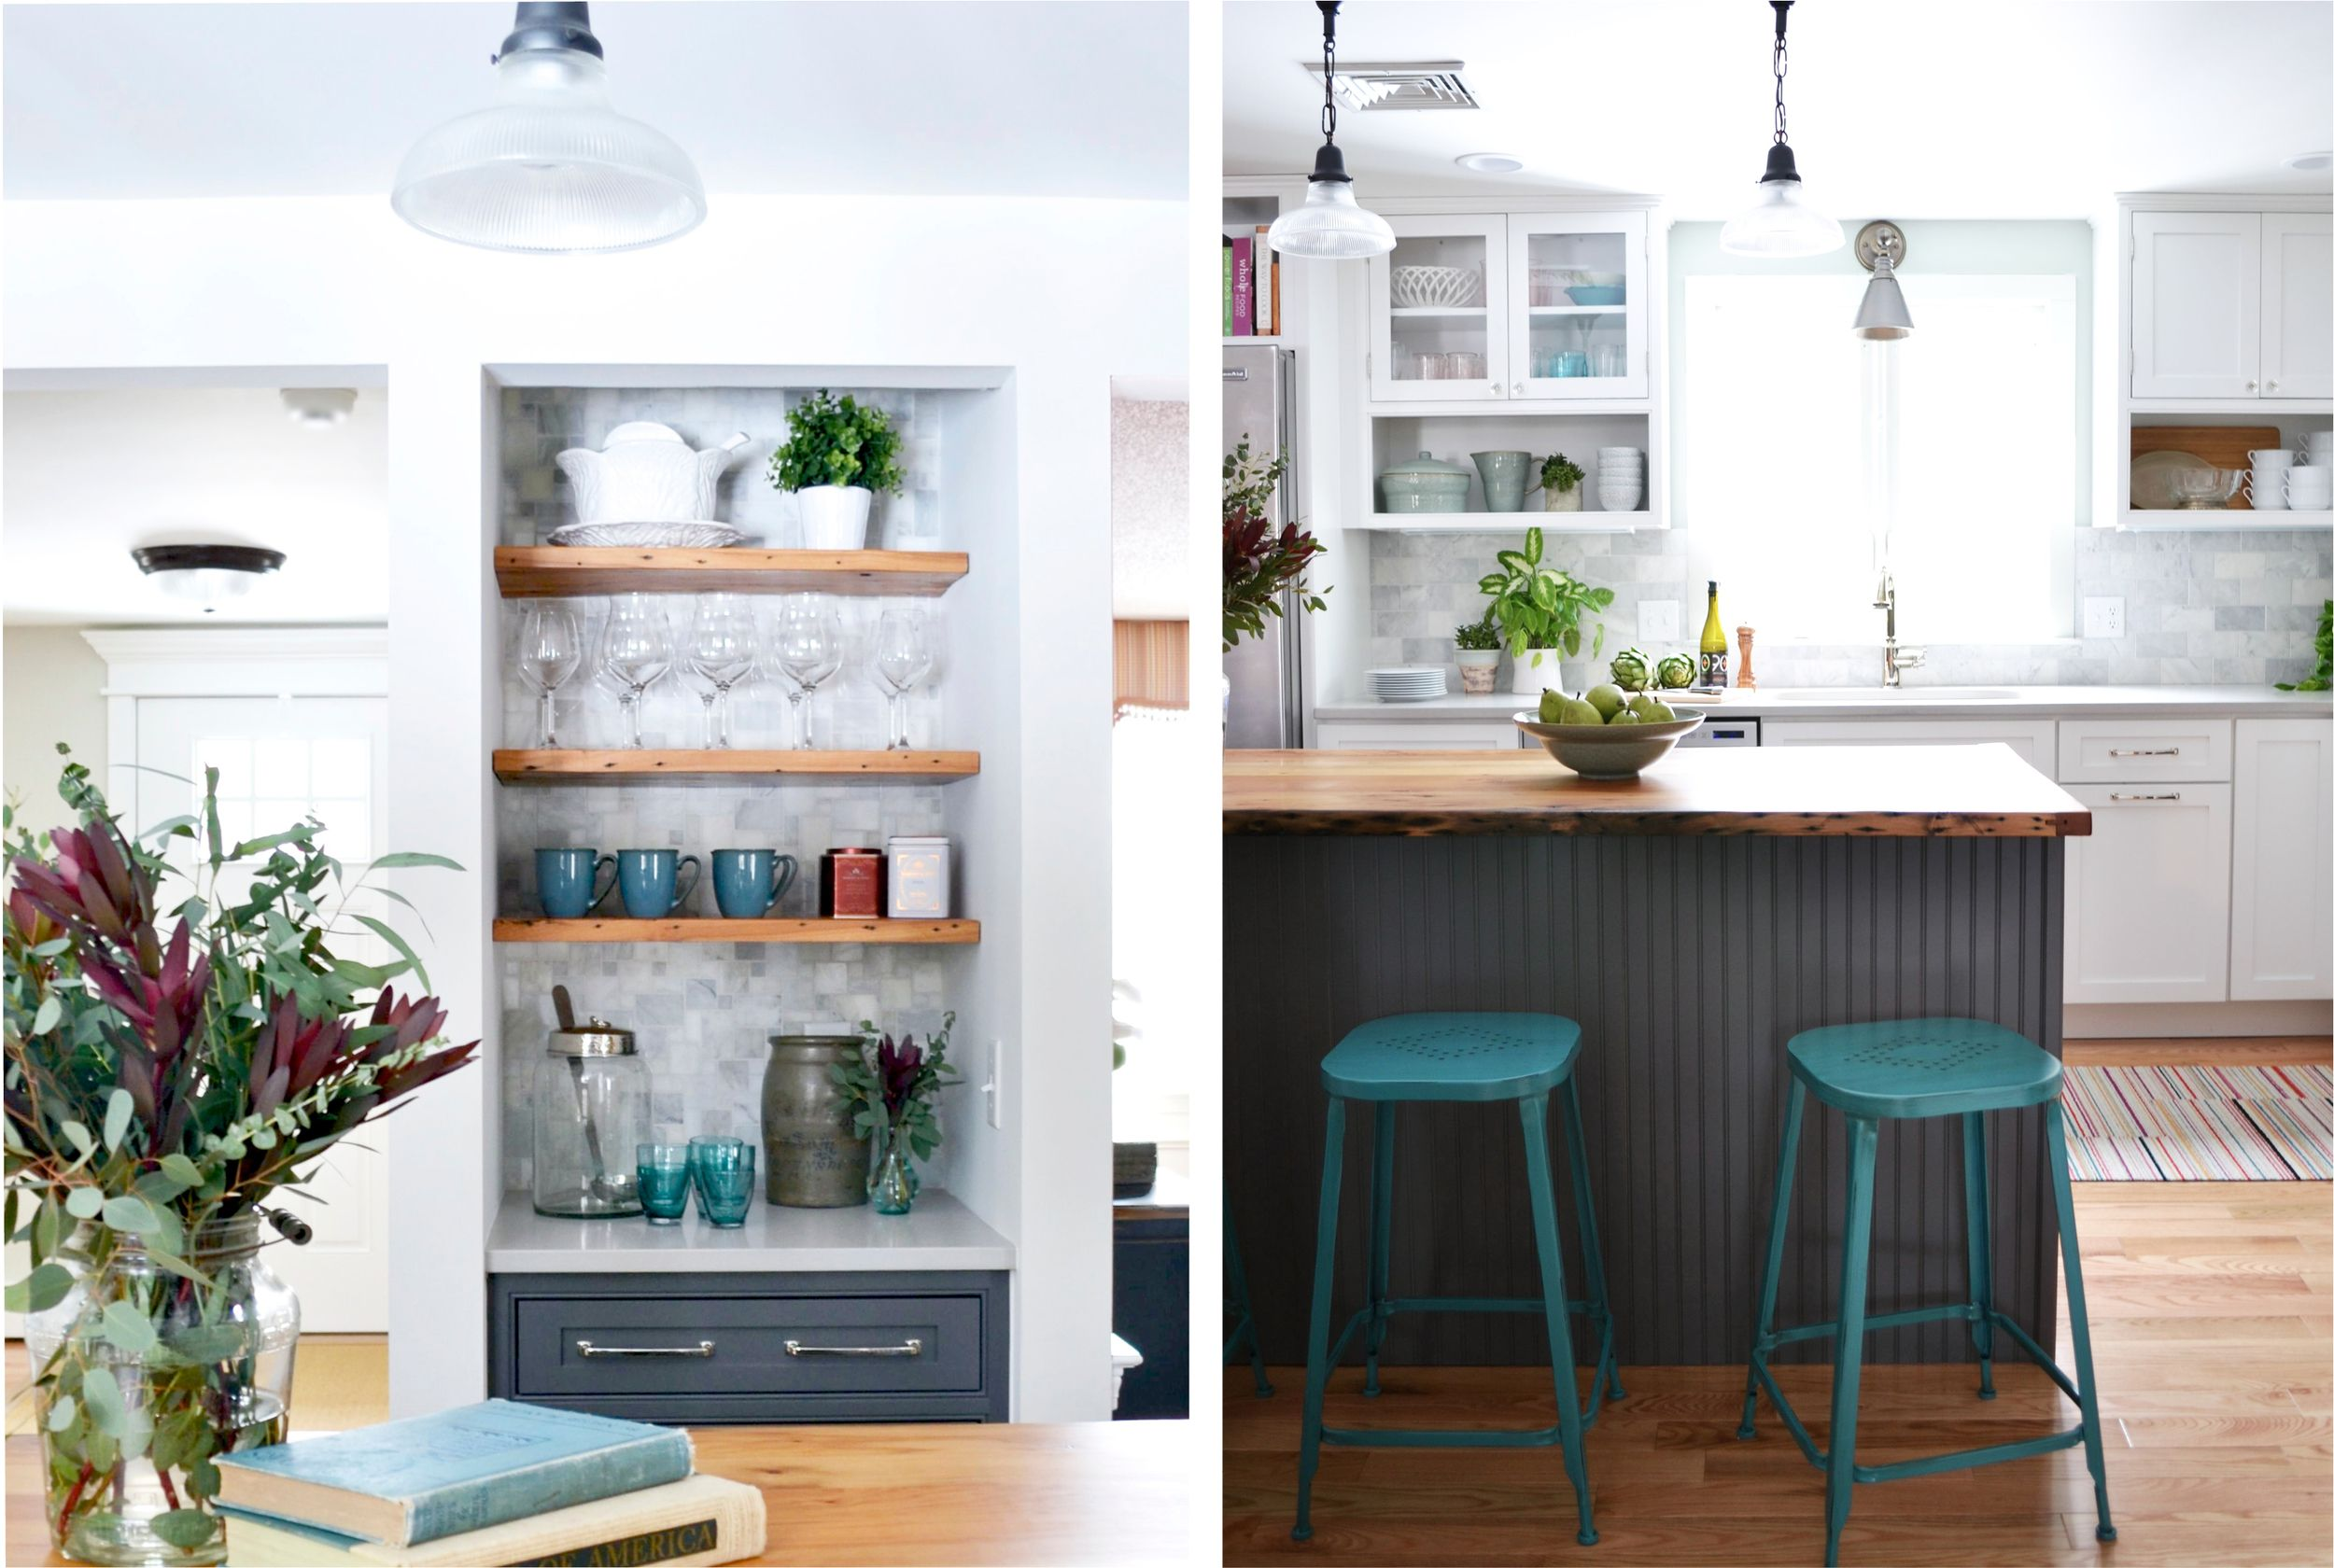 rehabitat kitchen | Kitchen | Pinterest | Interior design services ...